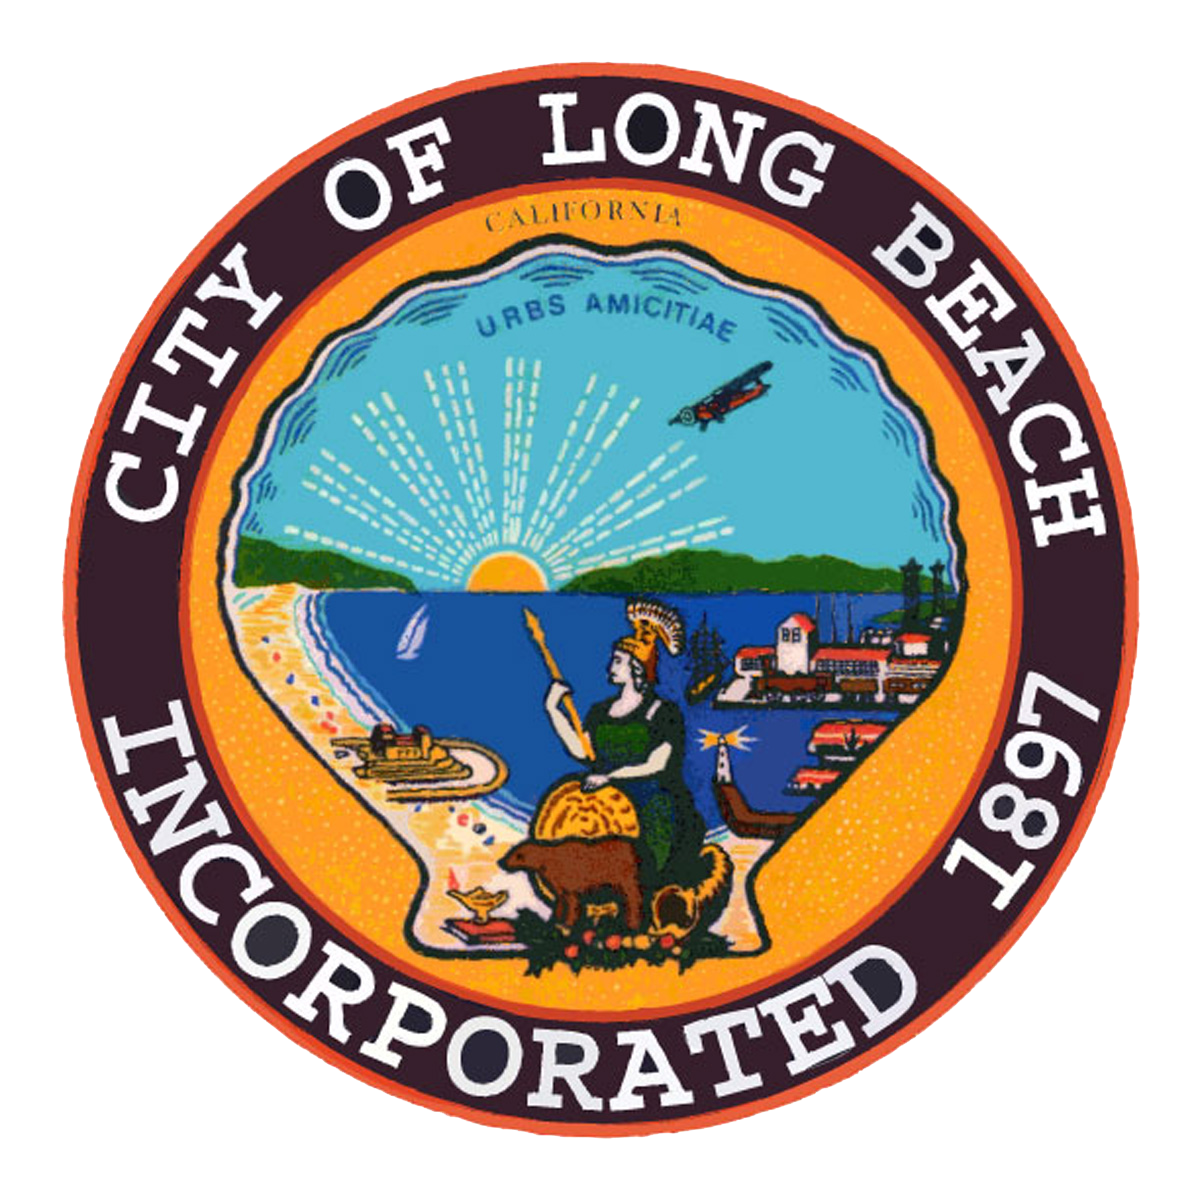 City of Long Beach Workplace Training